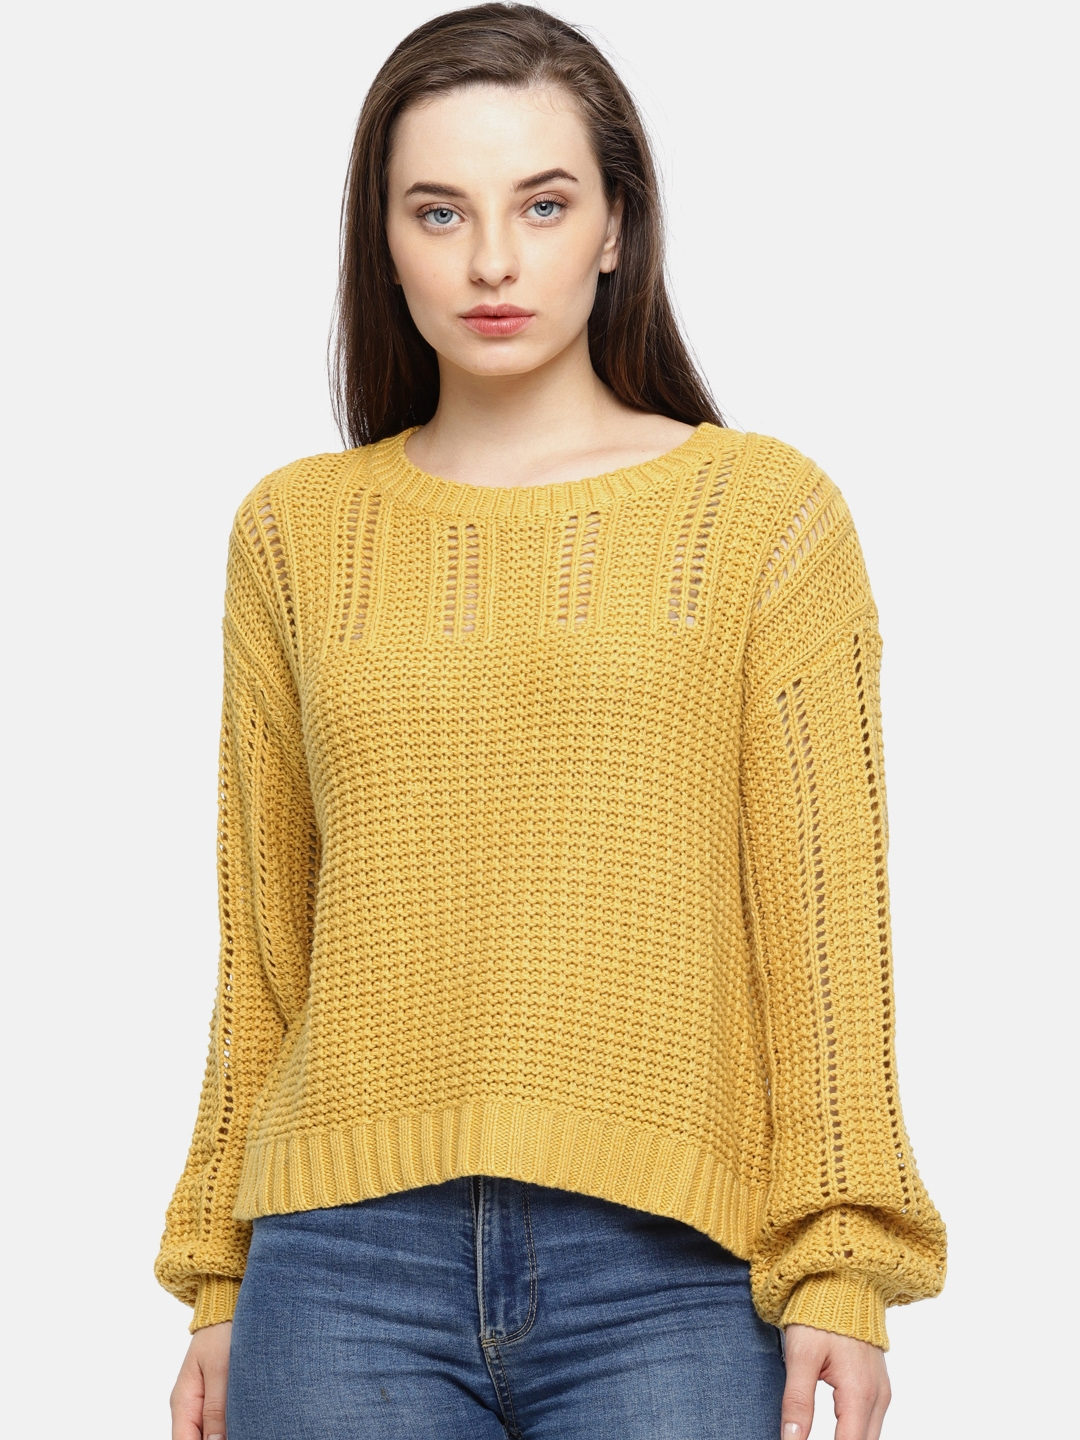 AMERICAN EAGLE OUTFITTERS Women Mustard Yellow Self Design Pullover cc7fdc6d0